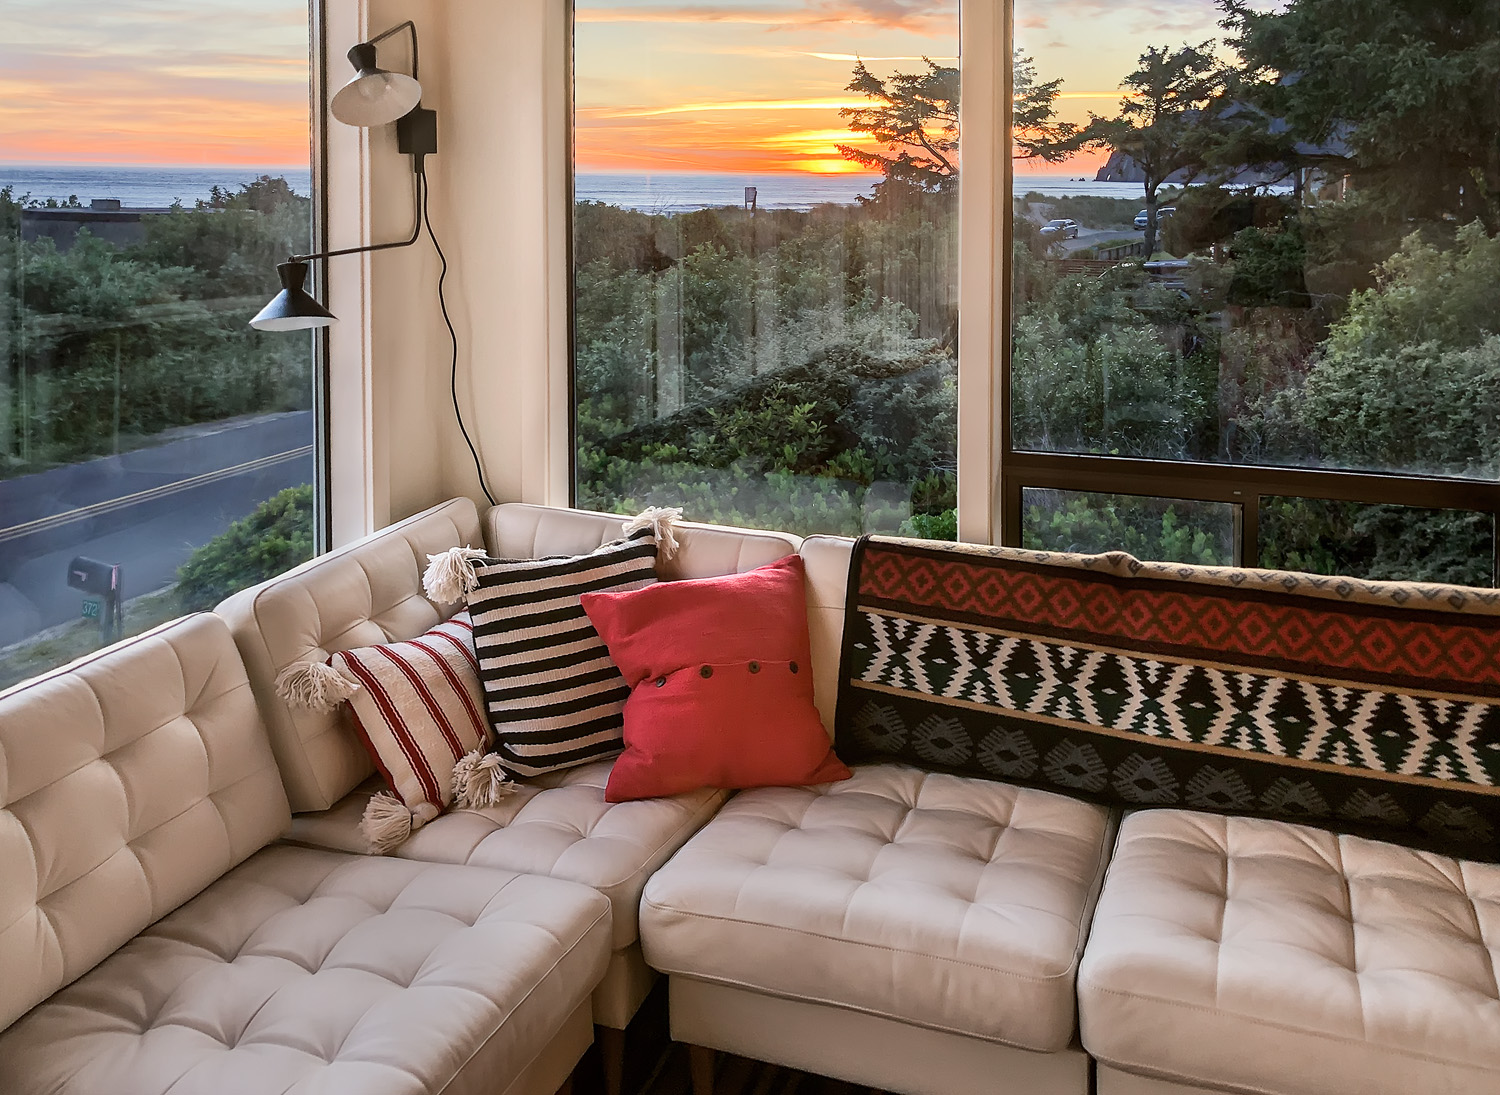 Manzanita Lodge View Seat